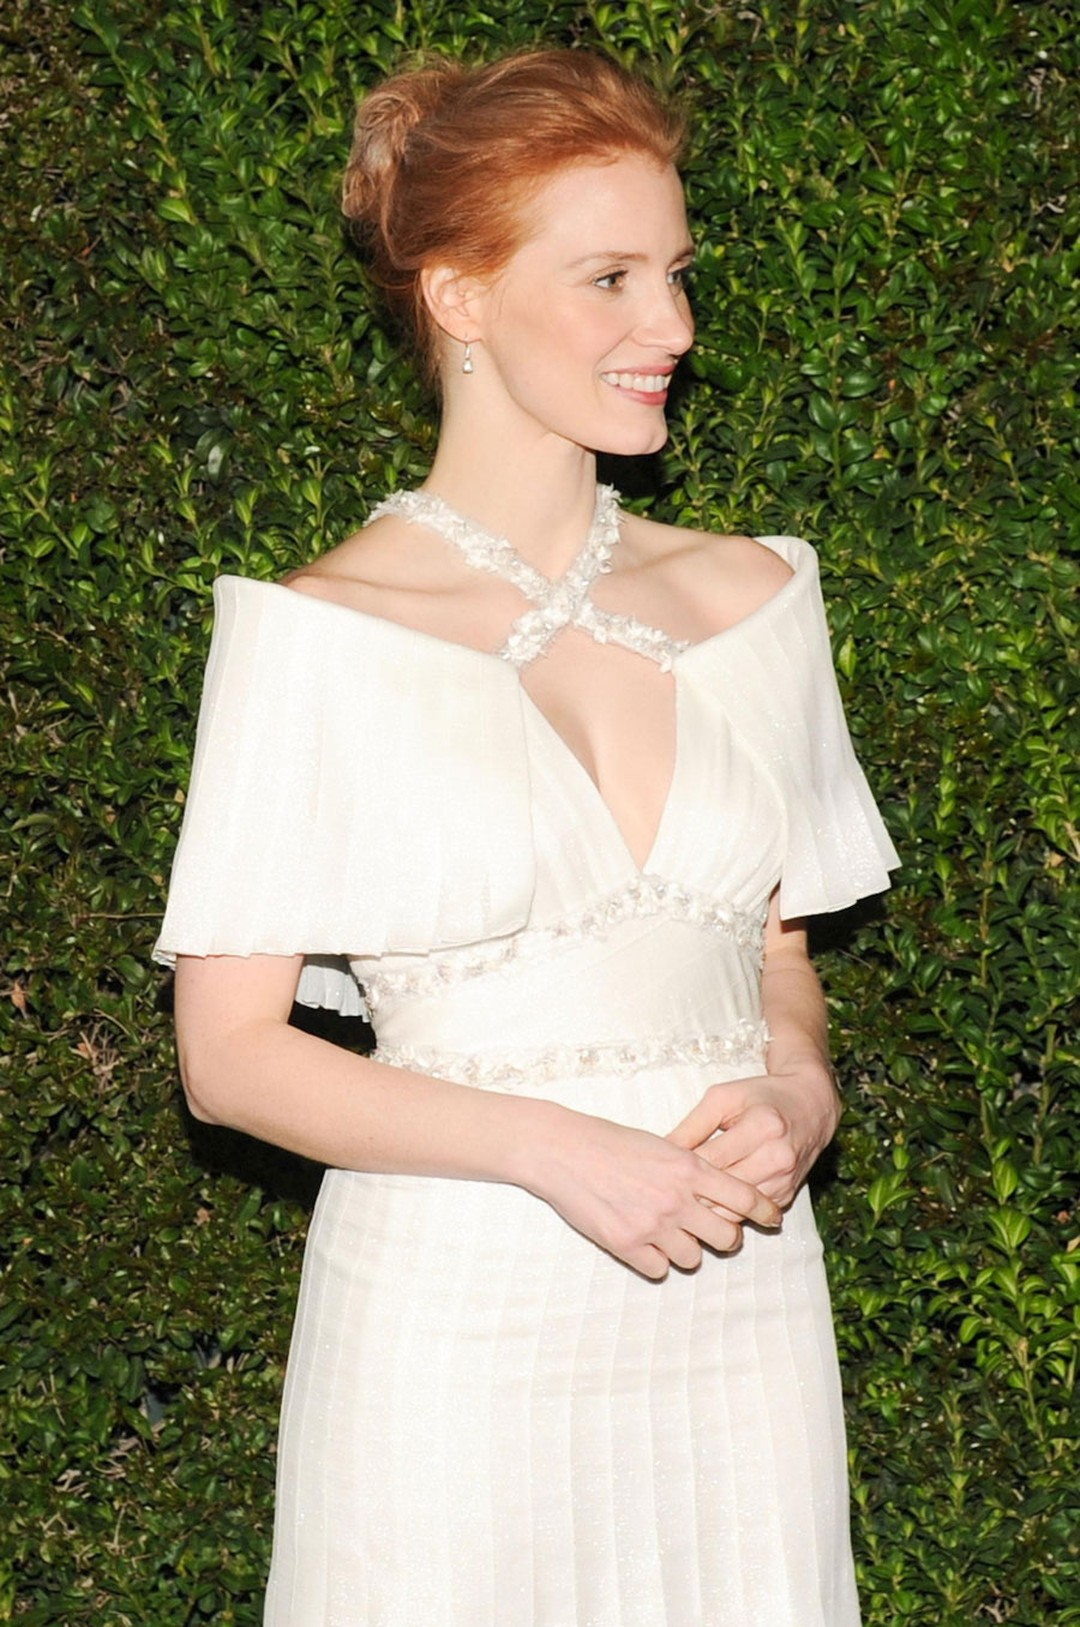 Jessica-Chastain-Chanel-and-Charles-Finch-Oscars-Dinner-23-fevrier-2013-ter